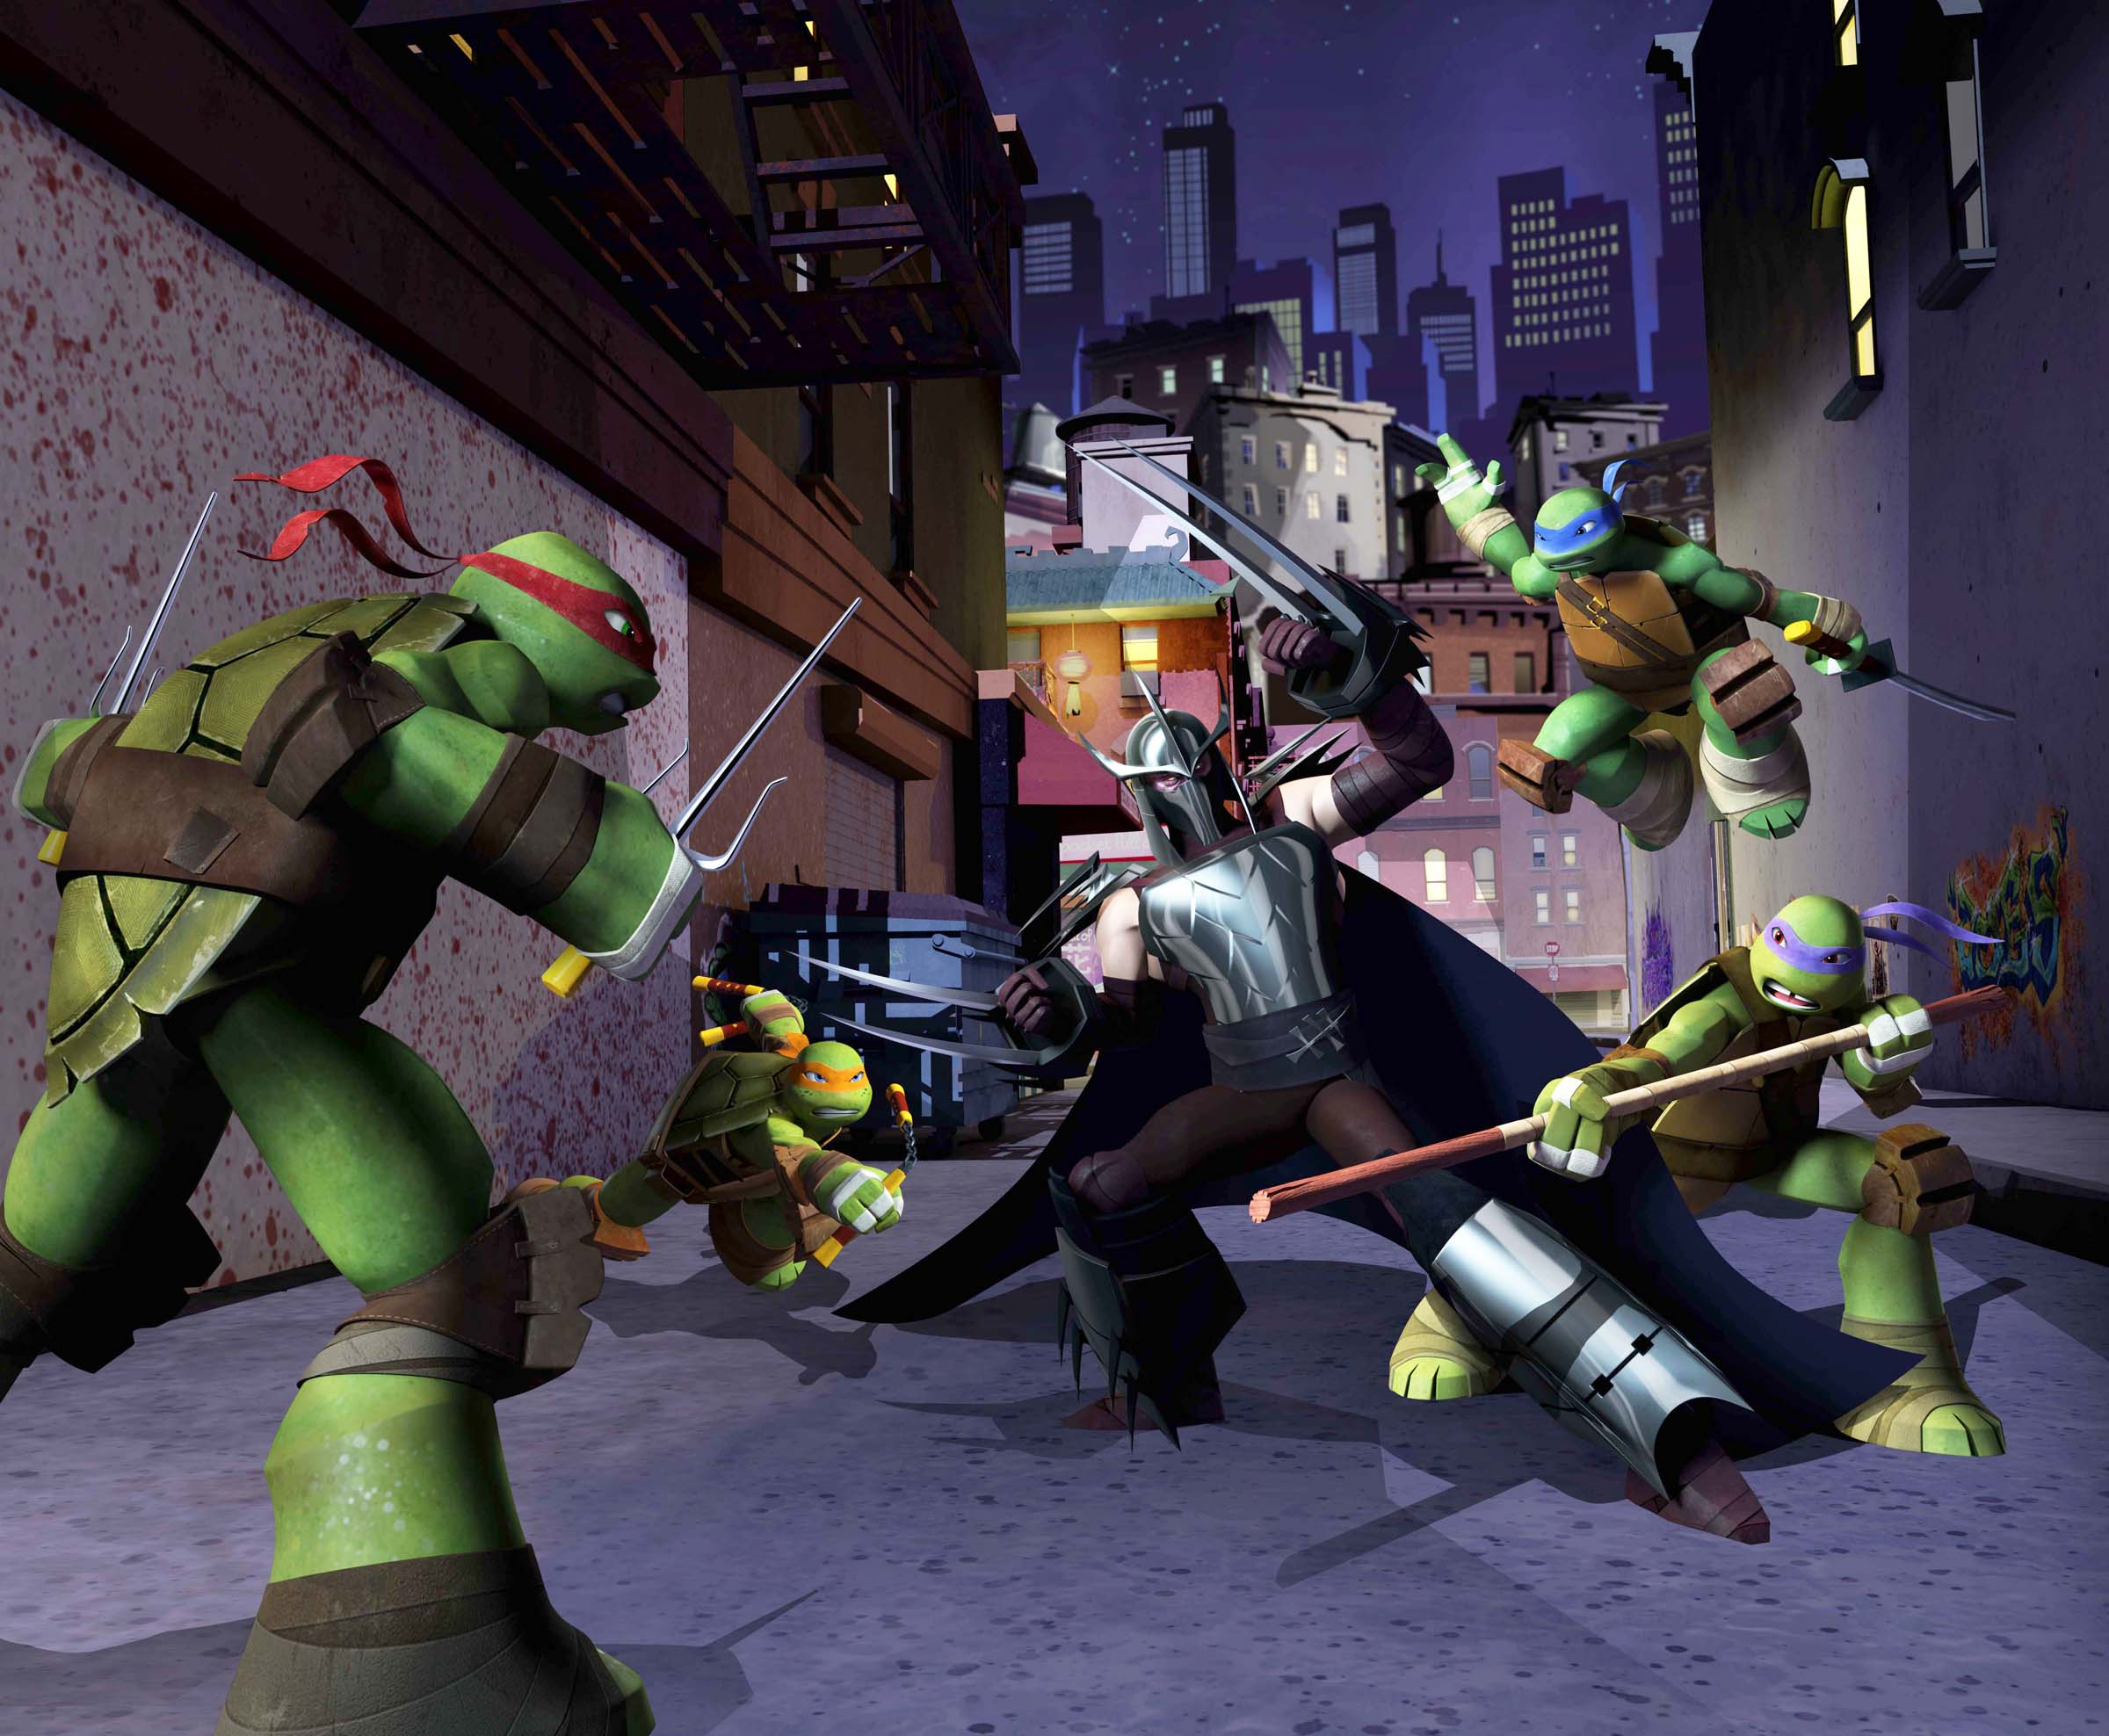 TMNT Season One  Image courtesy of Nickelodeon©2012 Viacom International Inc. All Rights Reserved